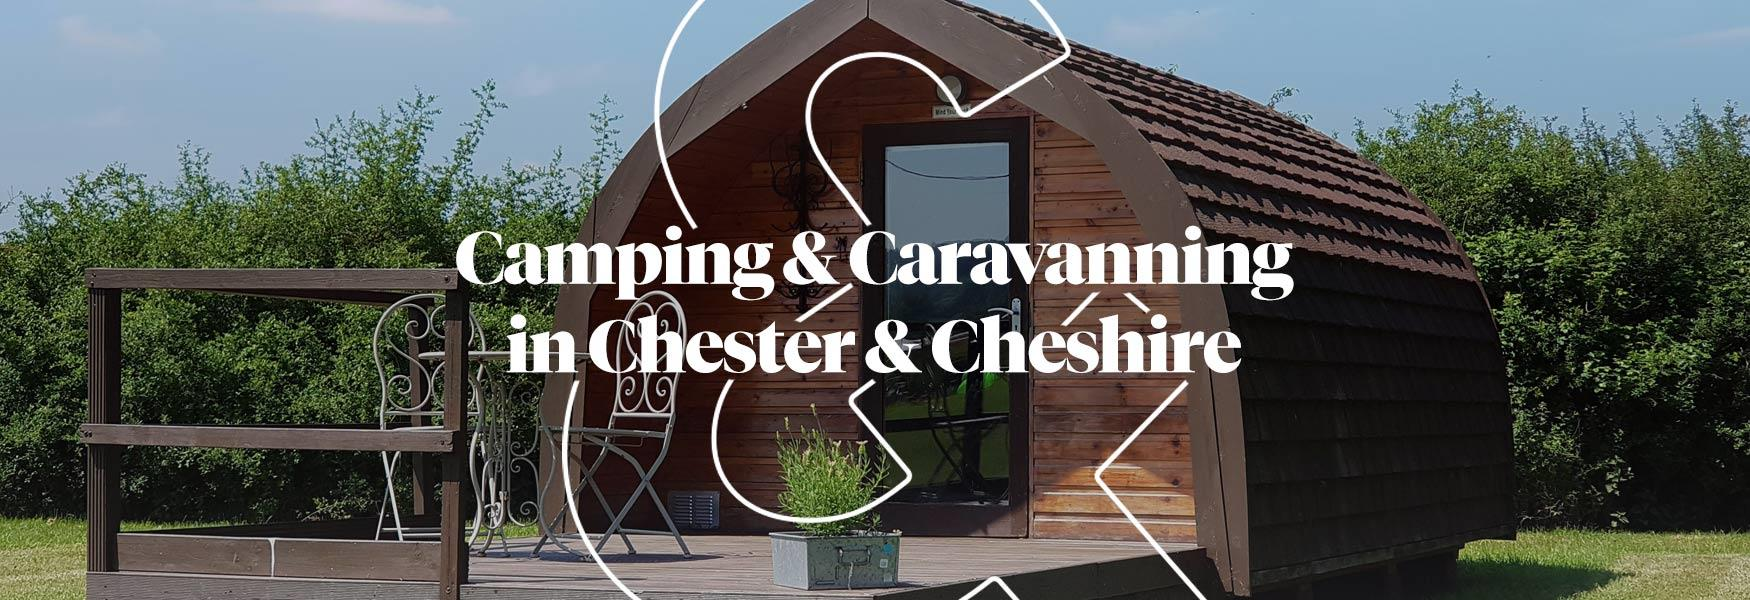 Camping and Caravanning in Chester & Cheshire